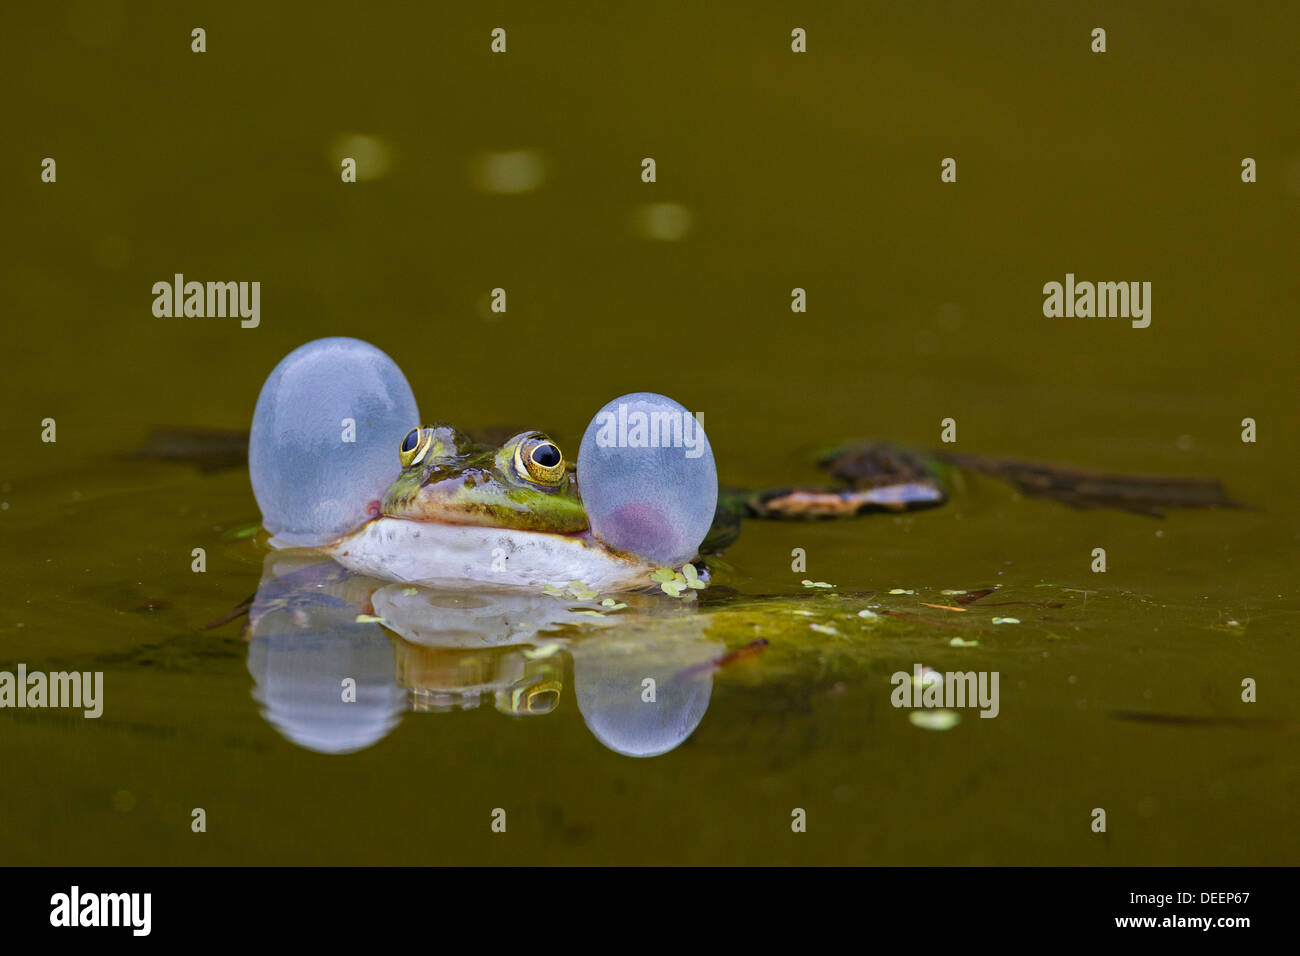 European edible frog (Pelophylax kl. esculentus / Rana kl. esculenta) croaking by inflating vocal sacs while floating in pond - Stock Image